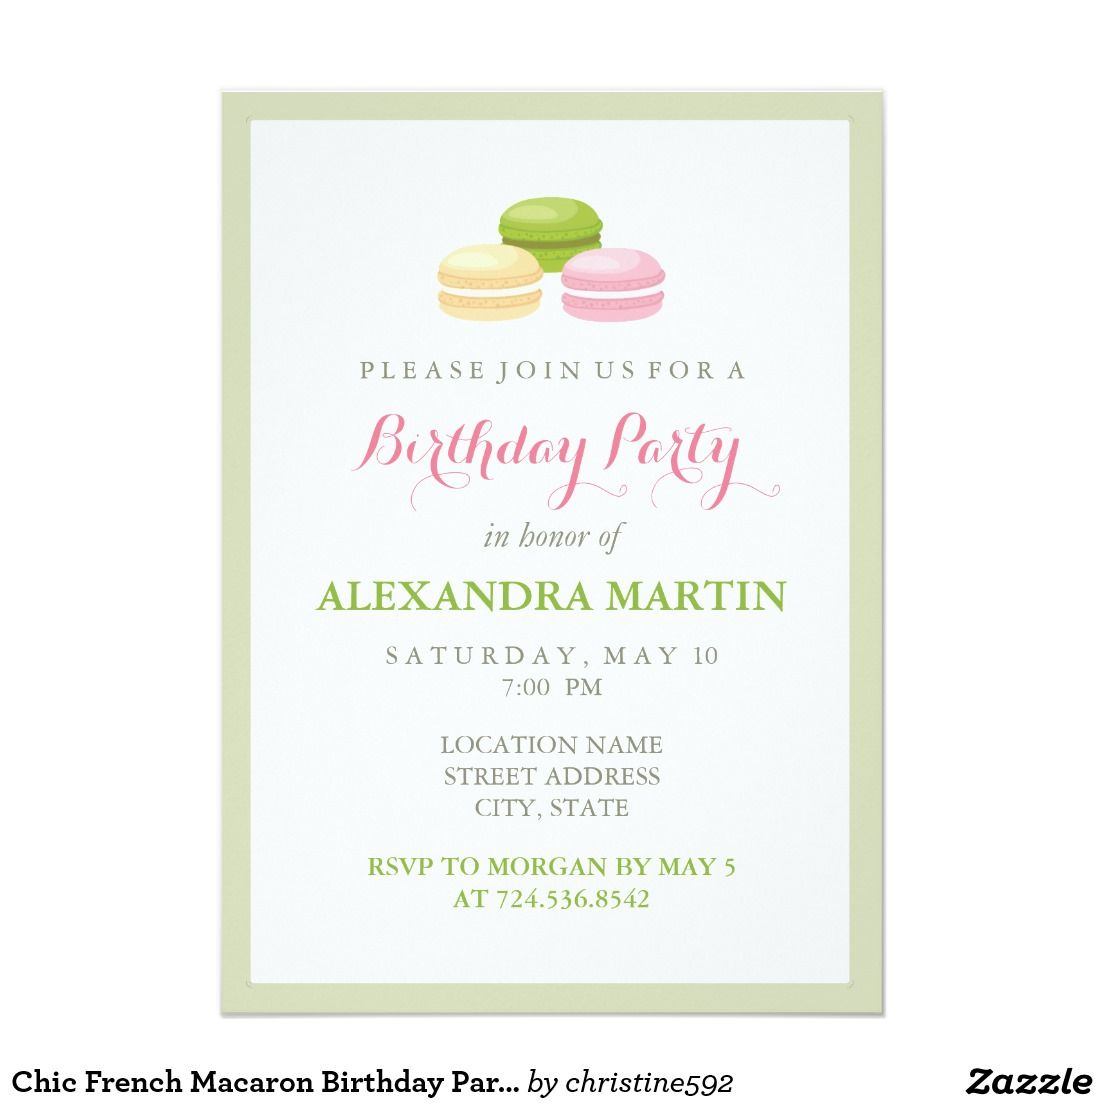 Chic french macaron birthday party card french macaron chic french macaron birthday party 5x7 paper invitation card stopboris Image collections